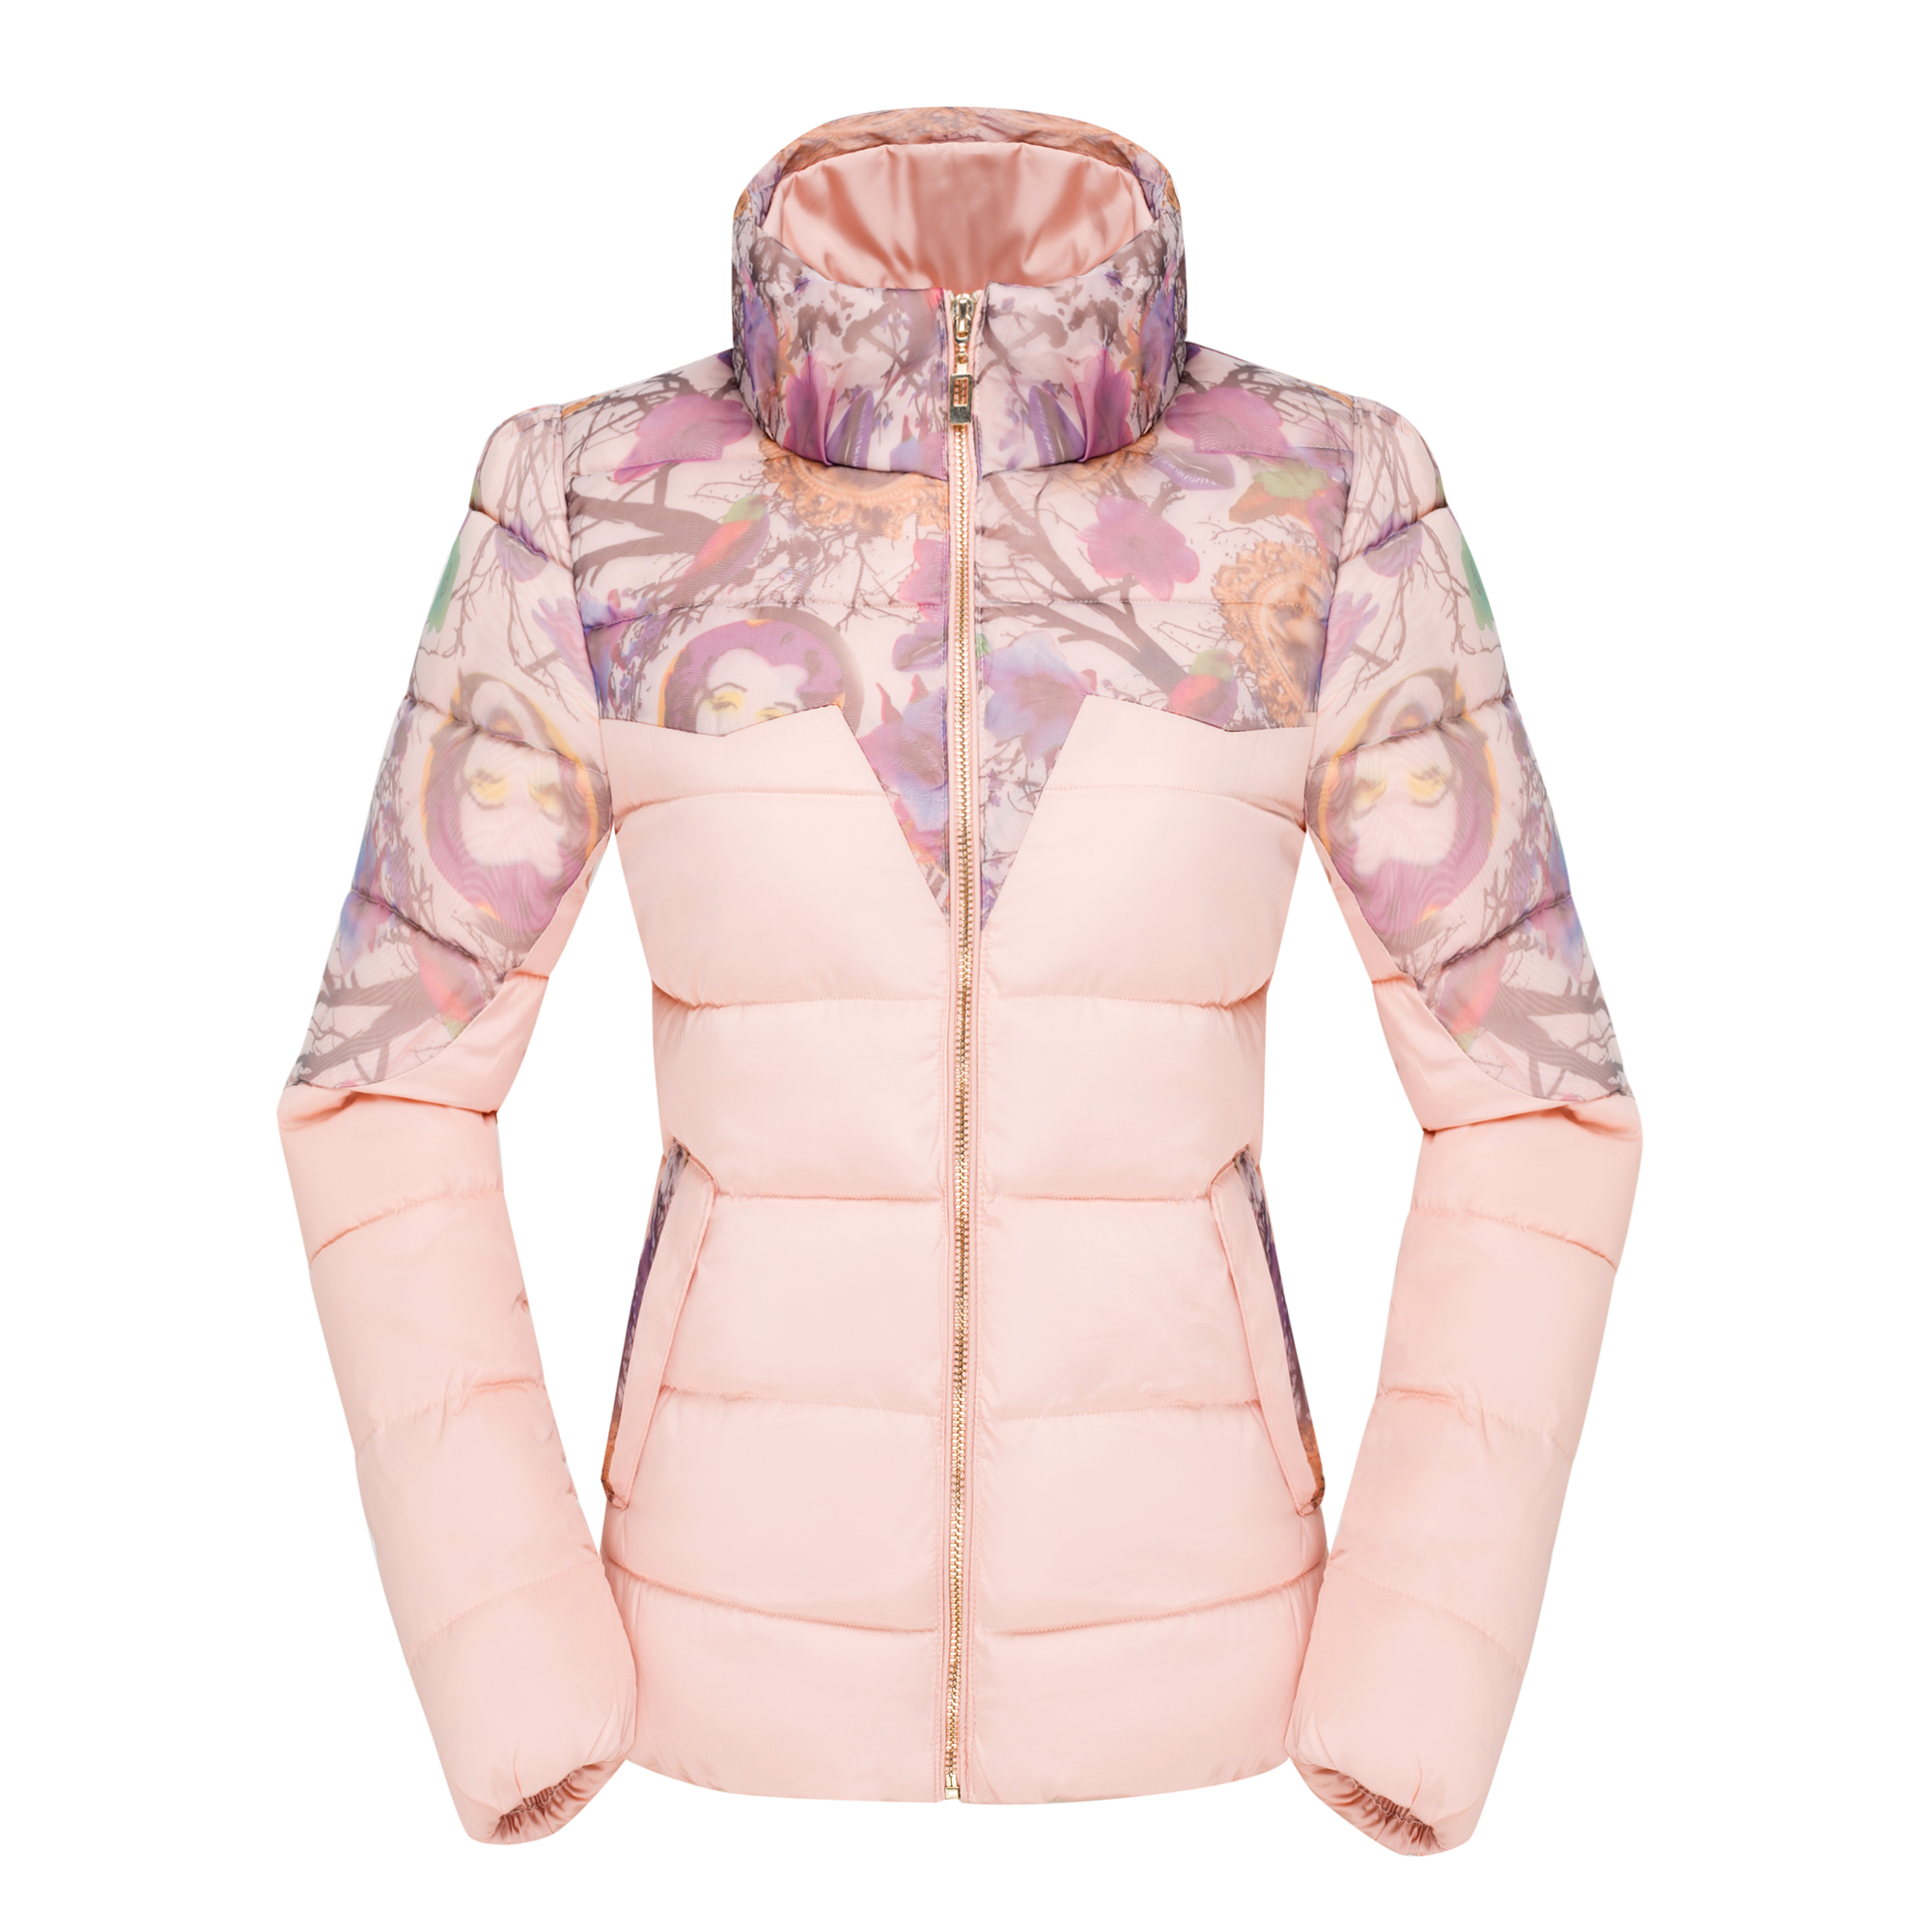 Winter Women 's New Small Cotton - Padded Jacket Short Paragraph Slim Thin Cotton Clothing Thickening Students Cotton Jacket inc new beige women s size small s faux leather knit motorcycle jacket $99